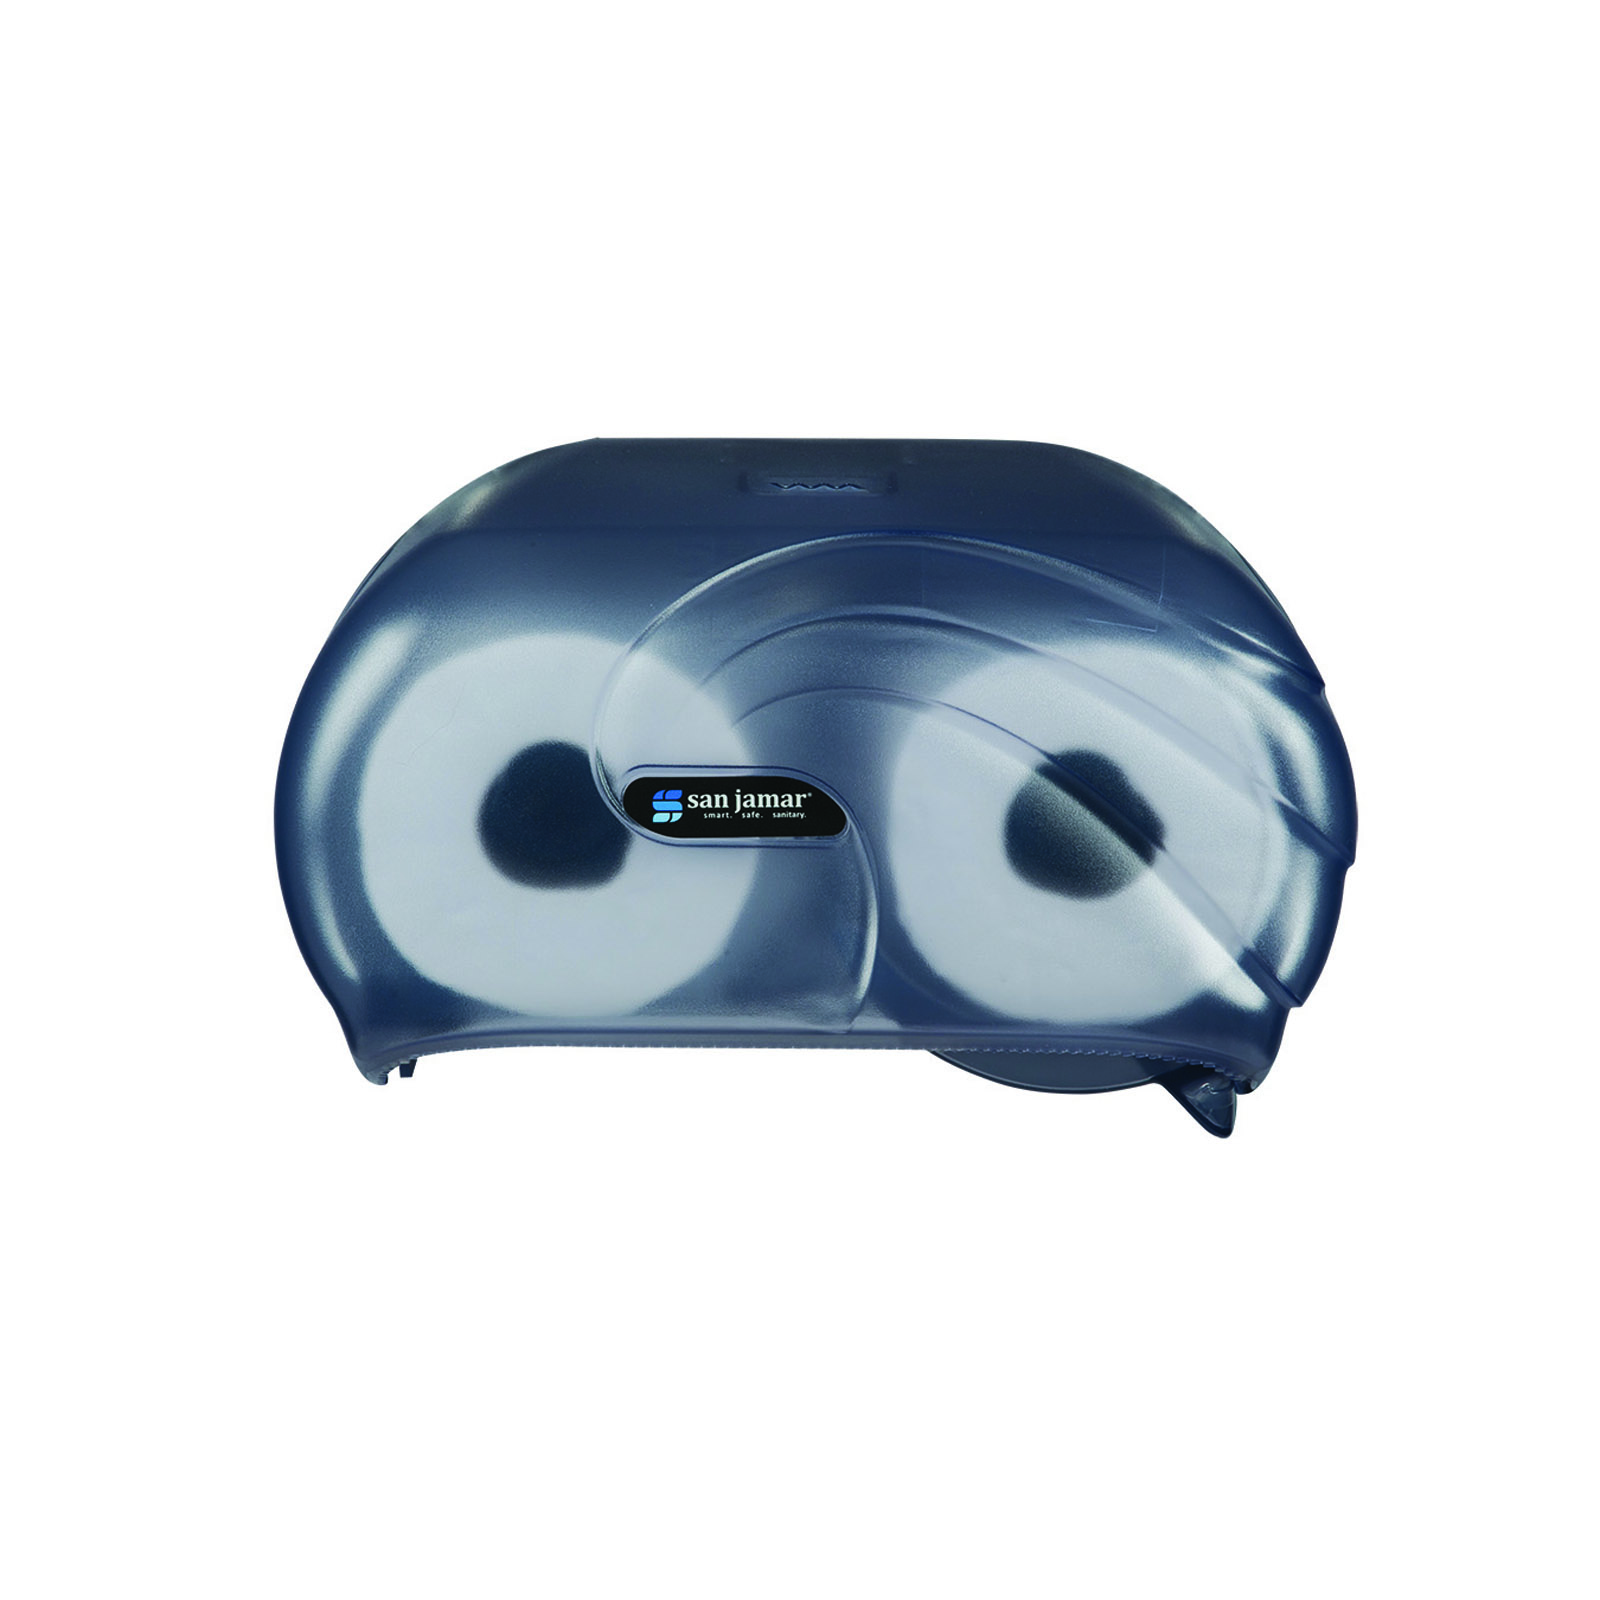 San Jamar R3690TBL toilet tissue dispenser